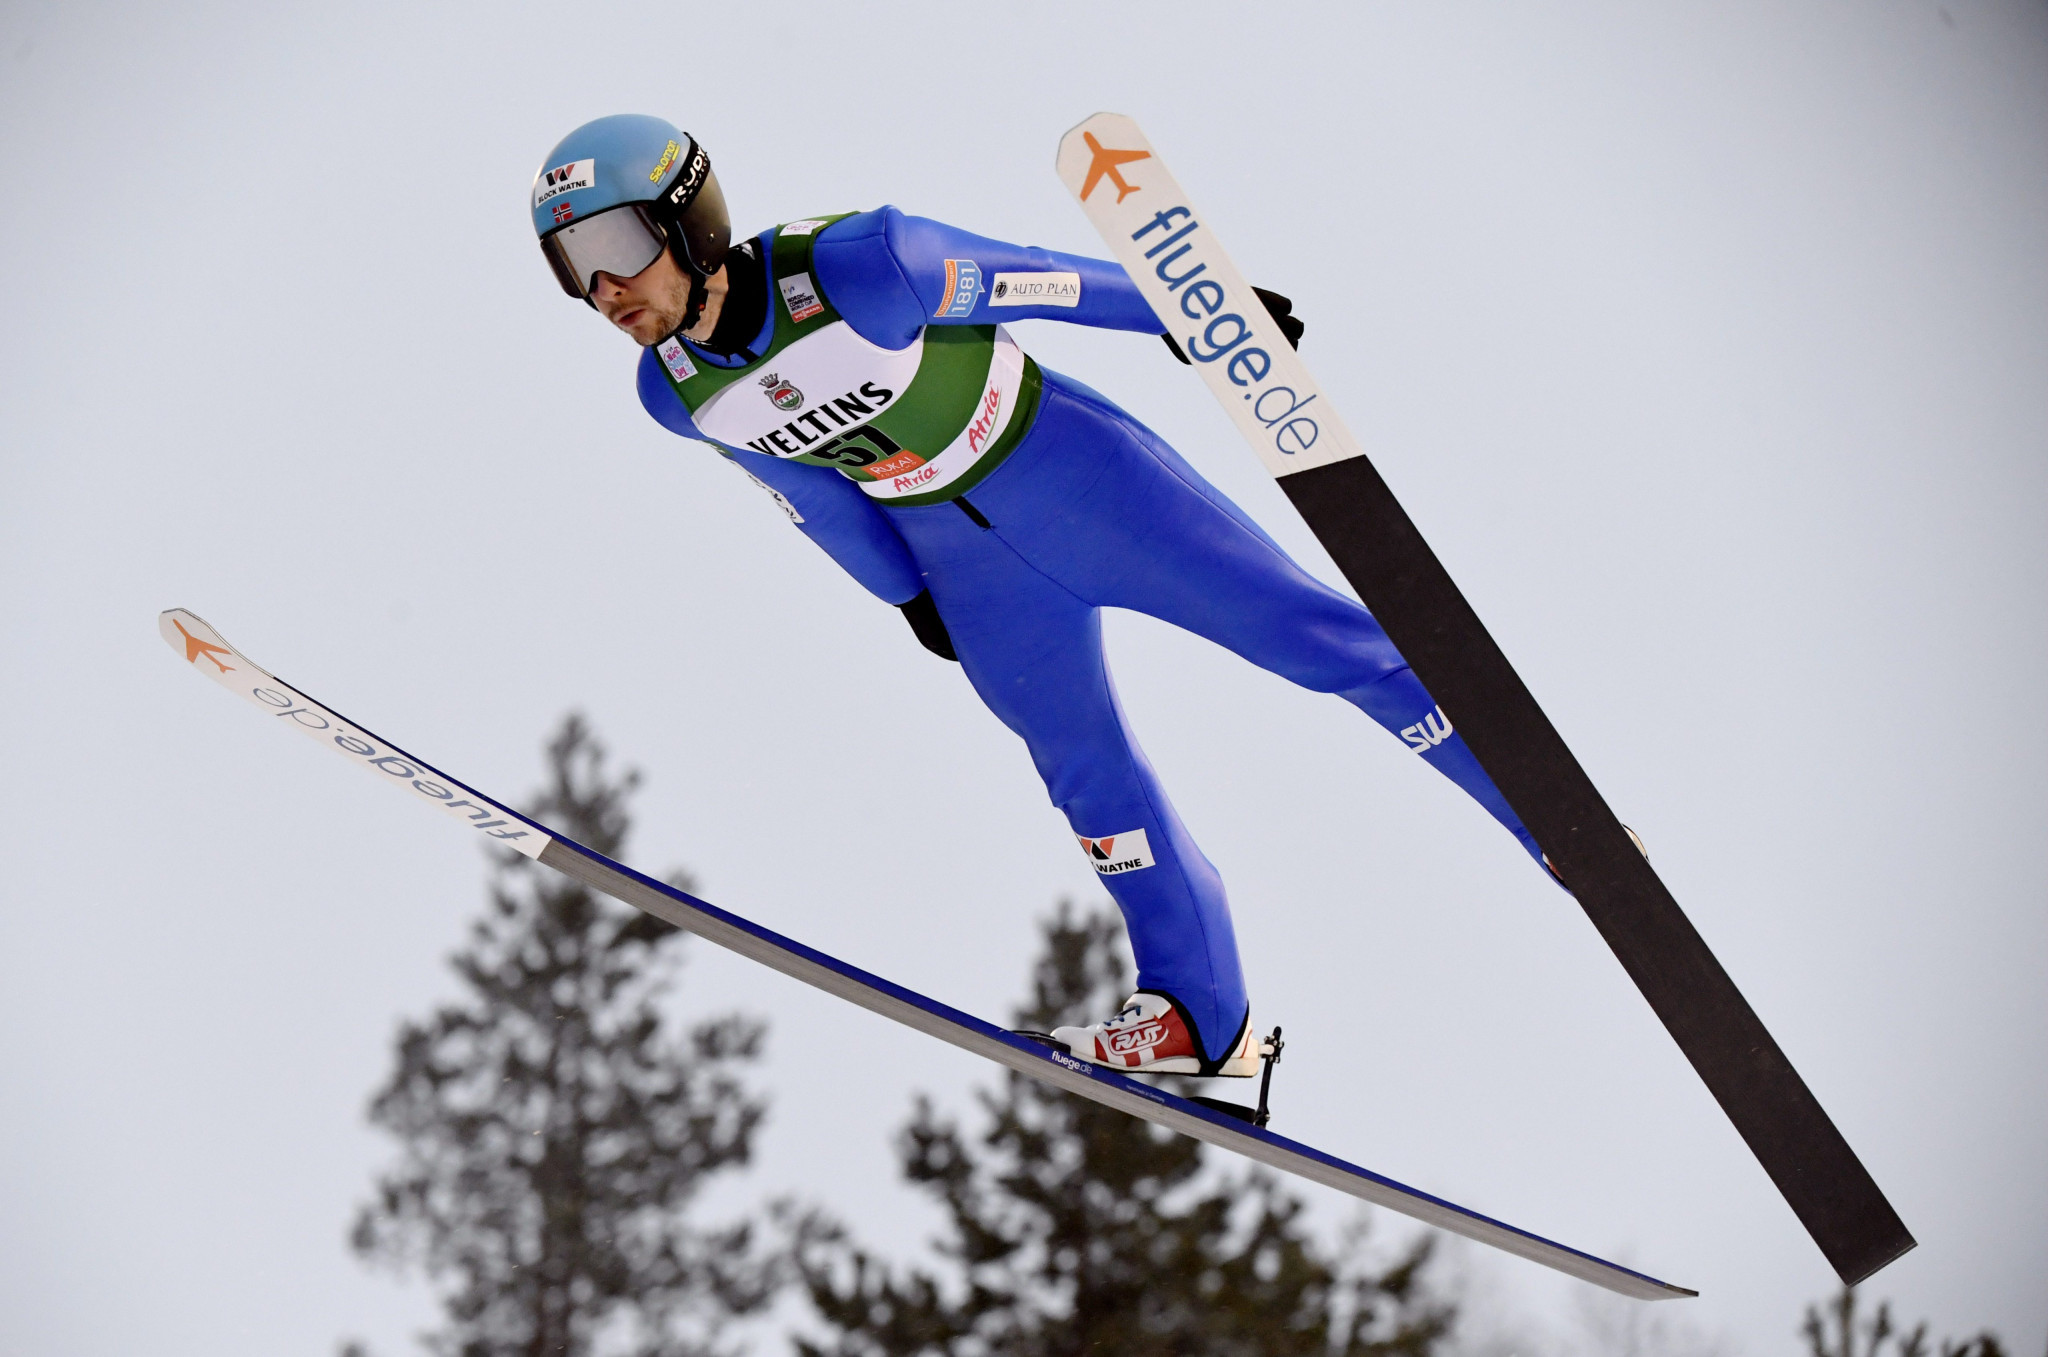 Norwegian duo hold off German challenge in FIS Nordic Combined World Cup team sprint in Val di Fiemme